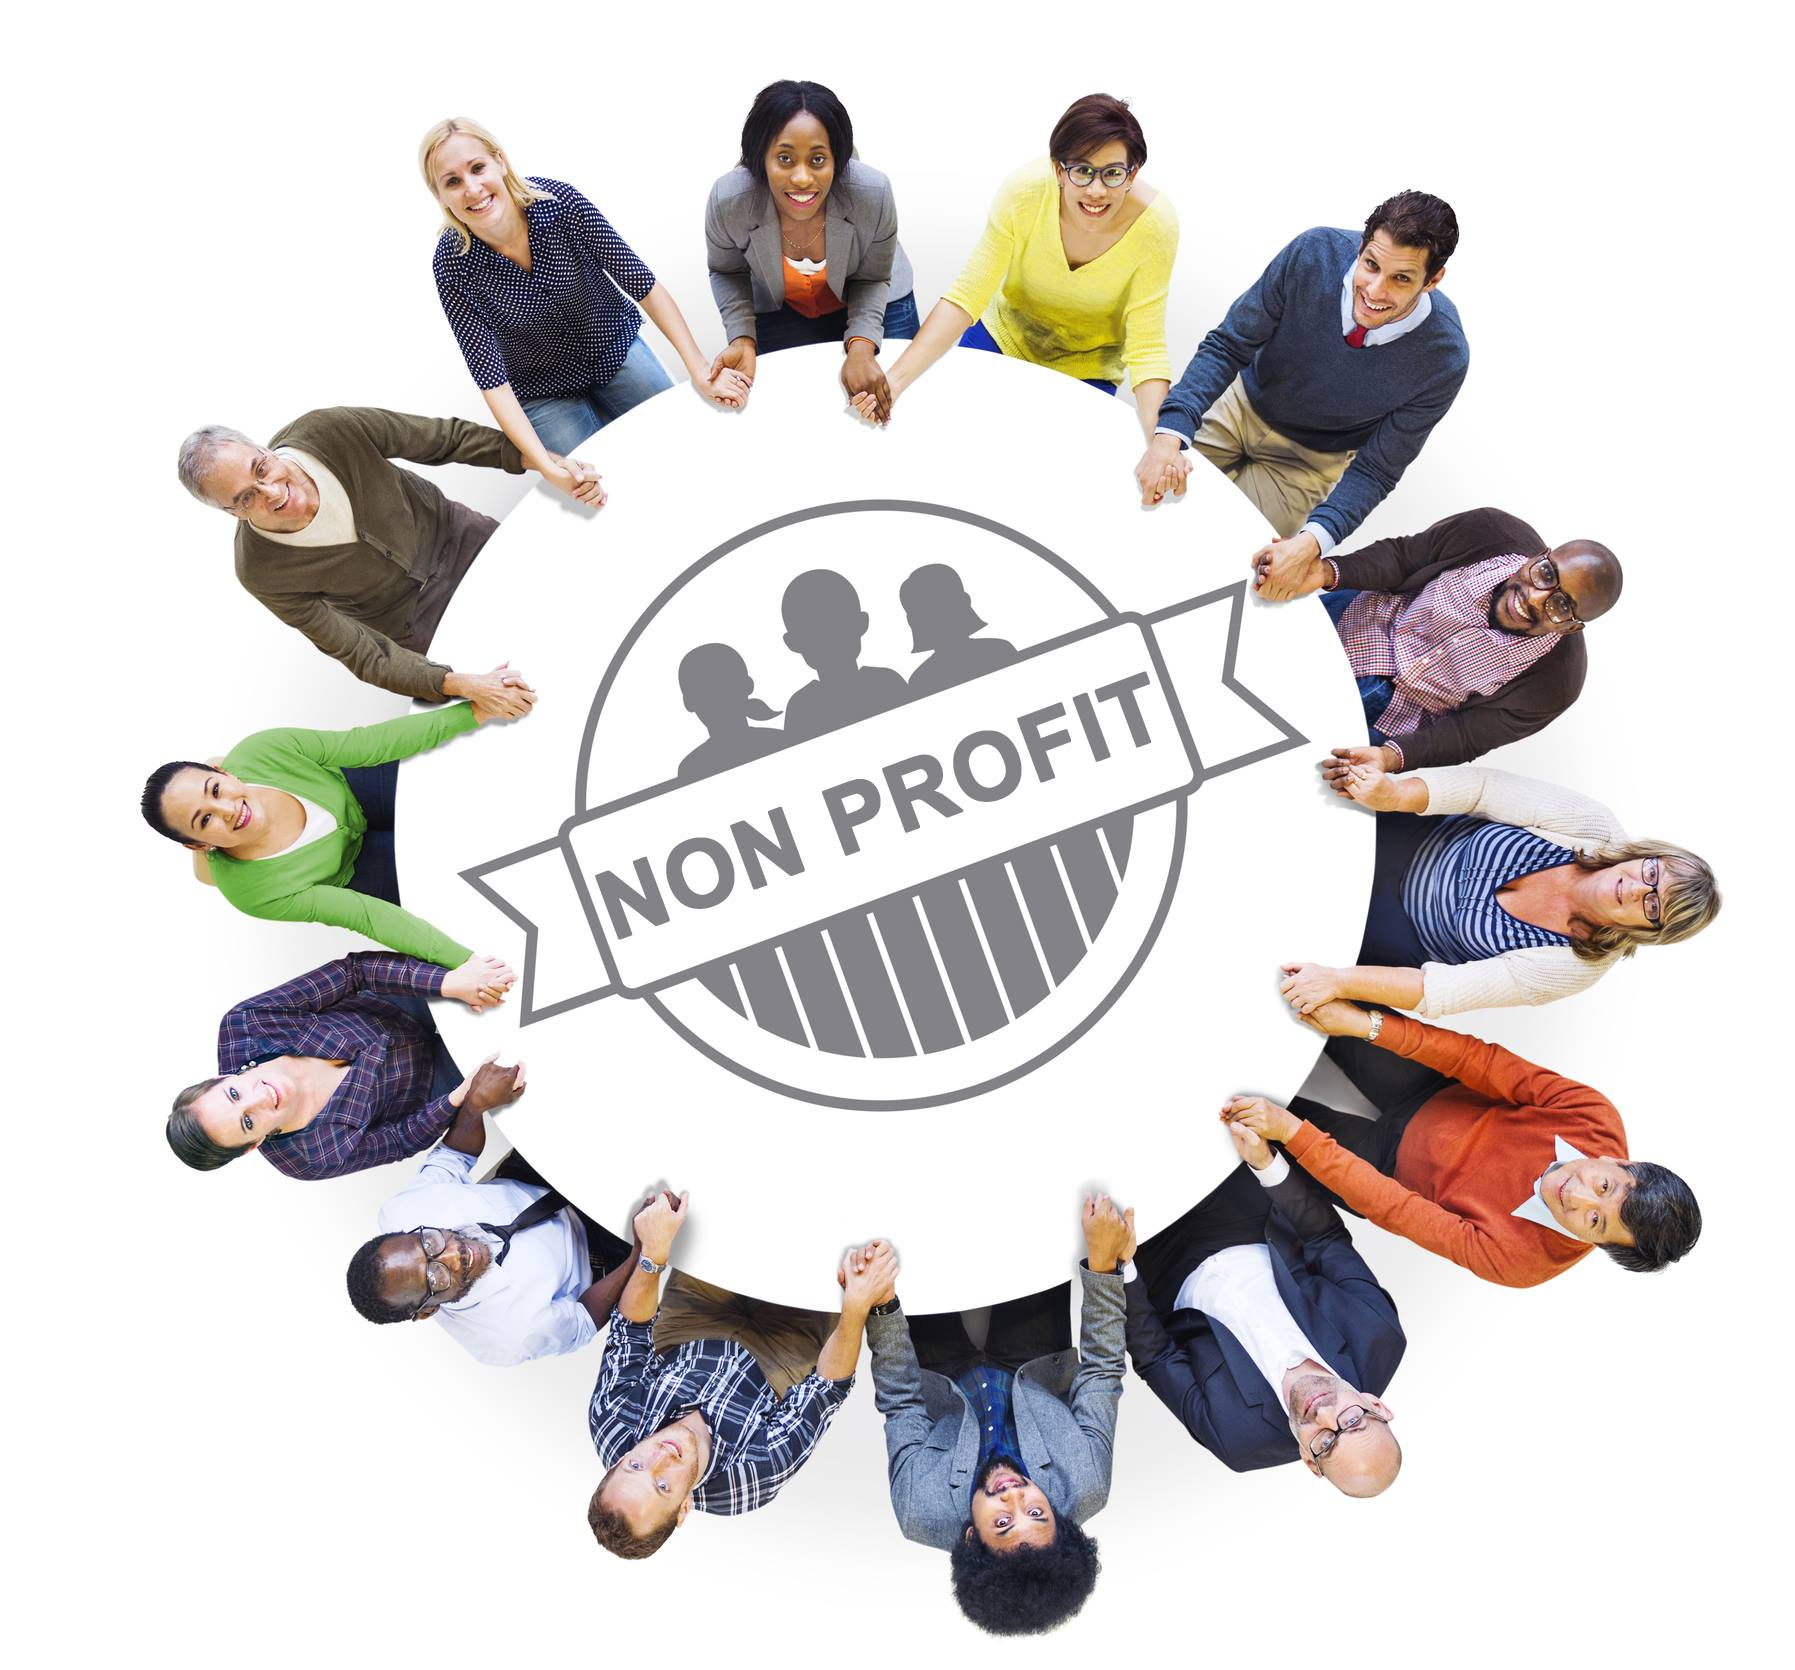 Merchant account for Non-profit